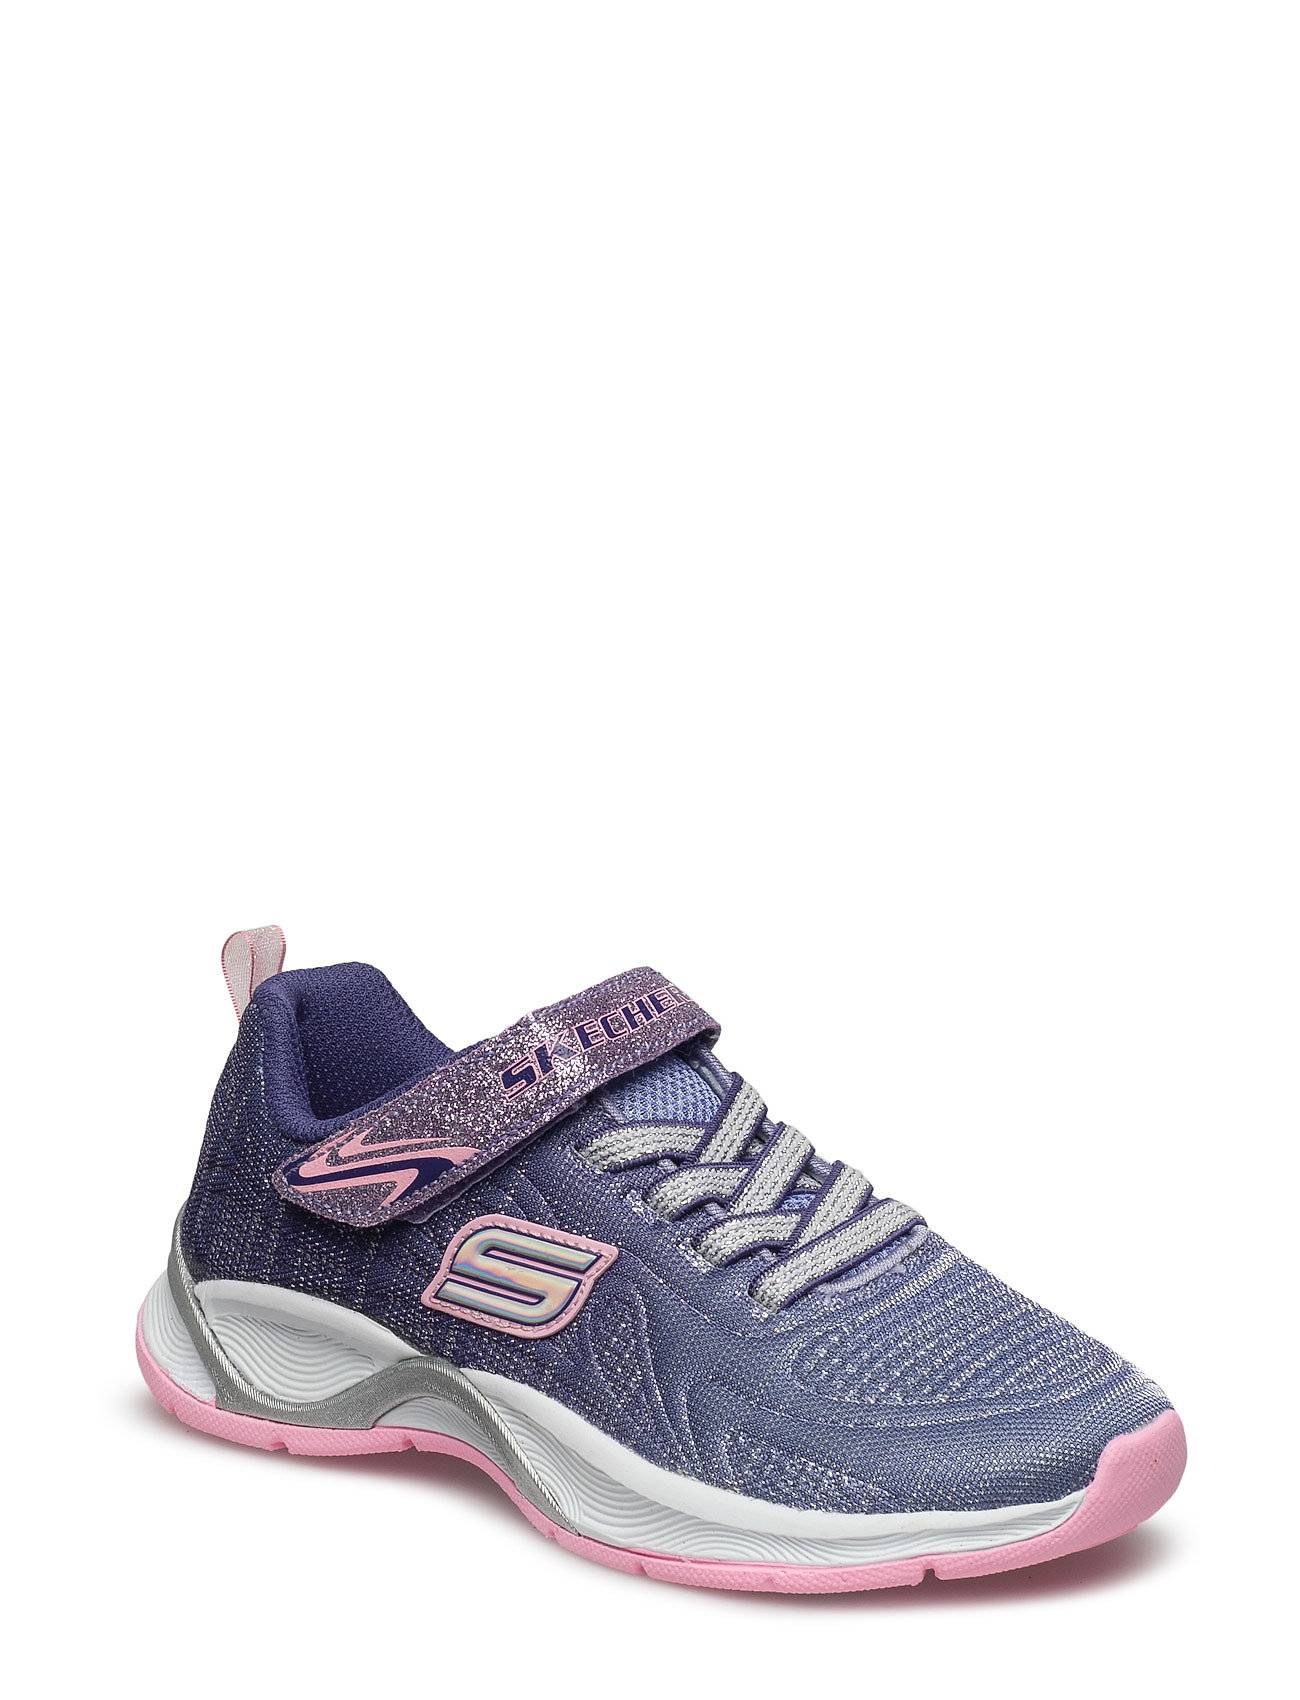 Skechers Girls Hi Glitz